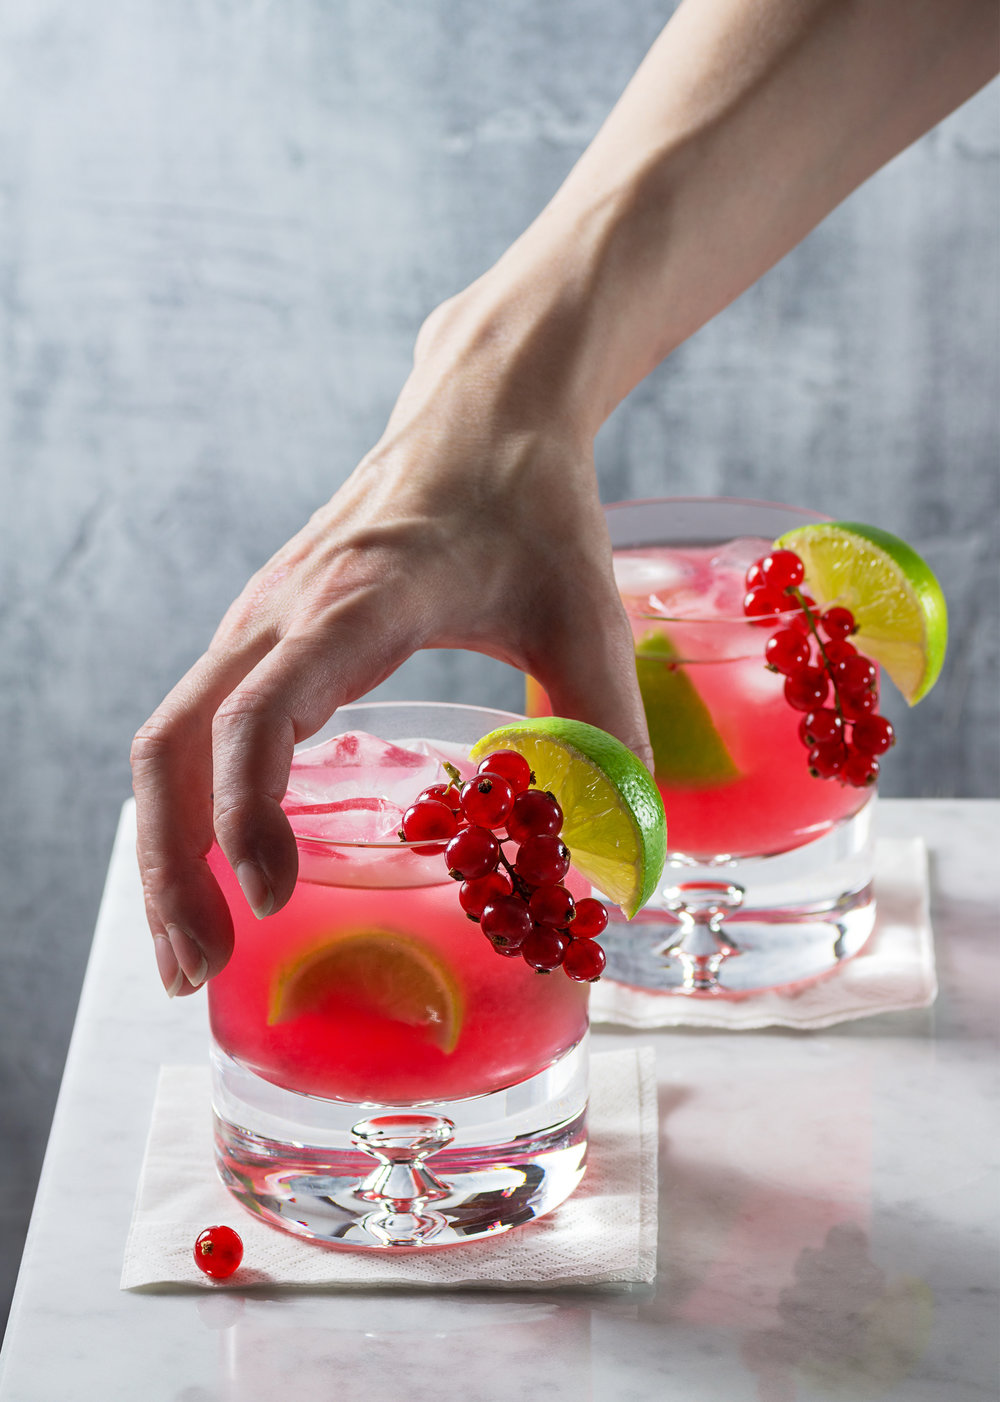 Reaching for a Red Currant Caipirinha